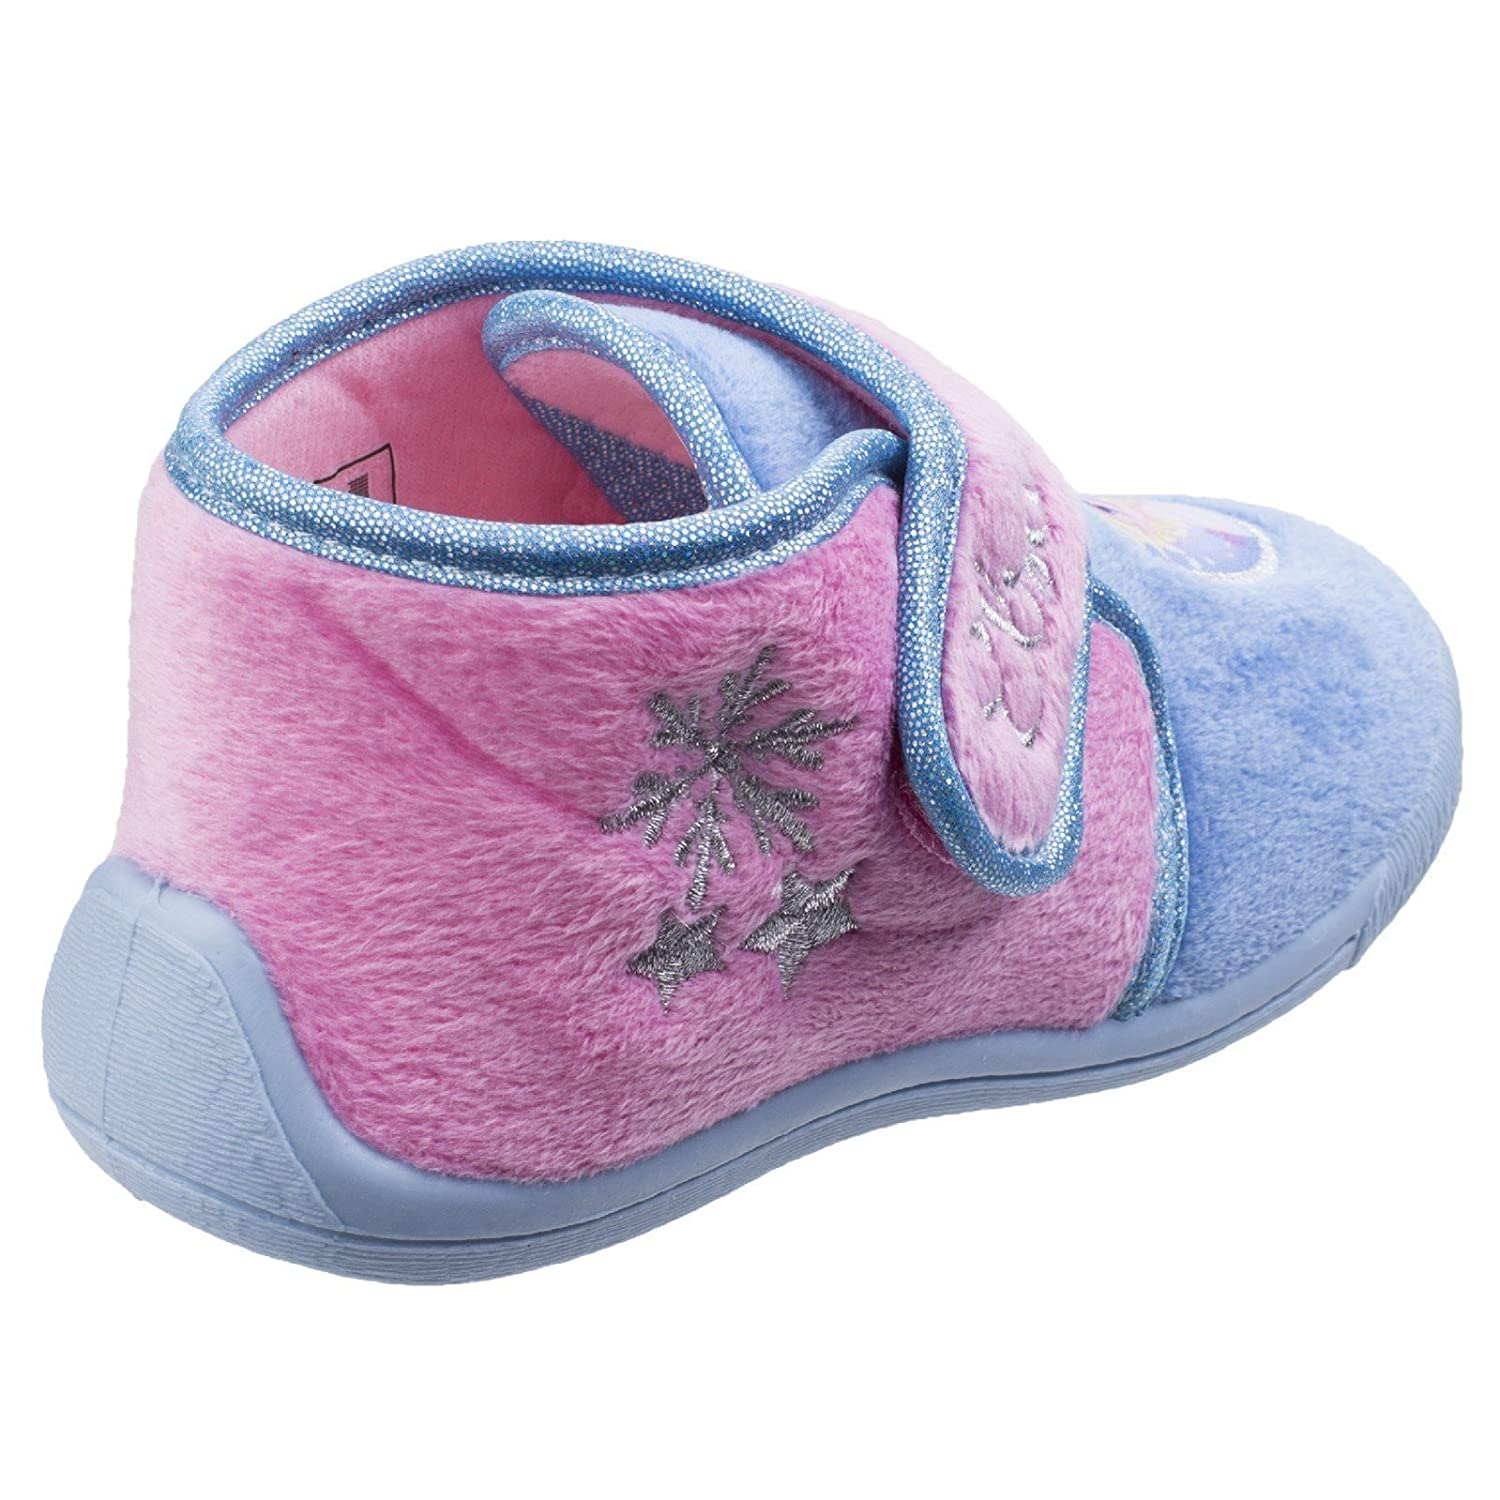 Leomil Childrens Girls Official Frozen Slippers: Amazon.co.uk: Shoes & Bags